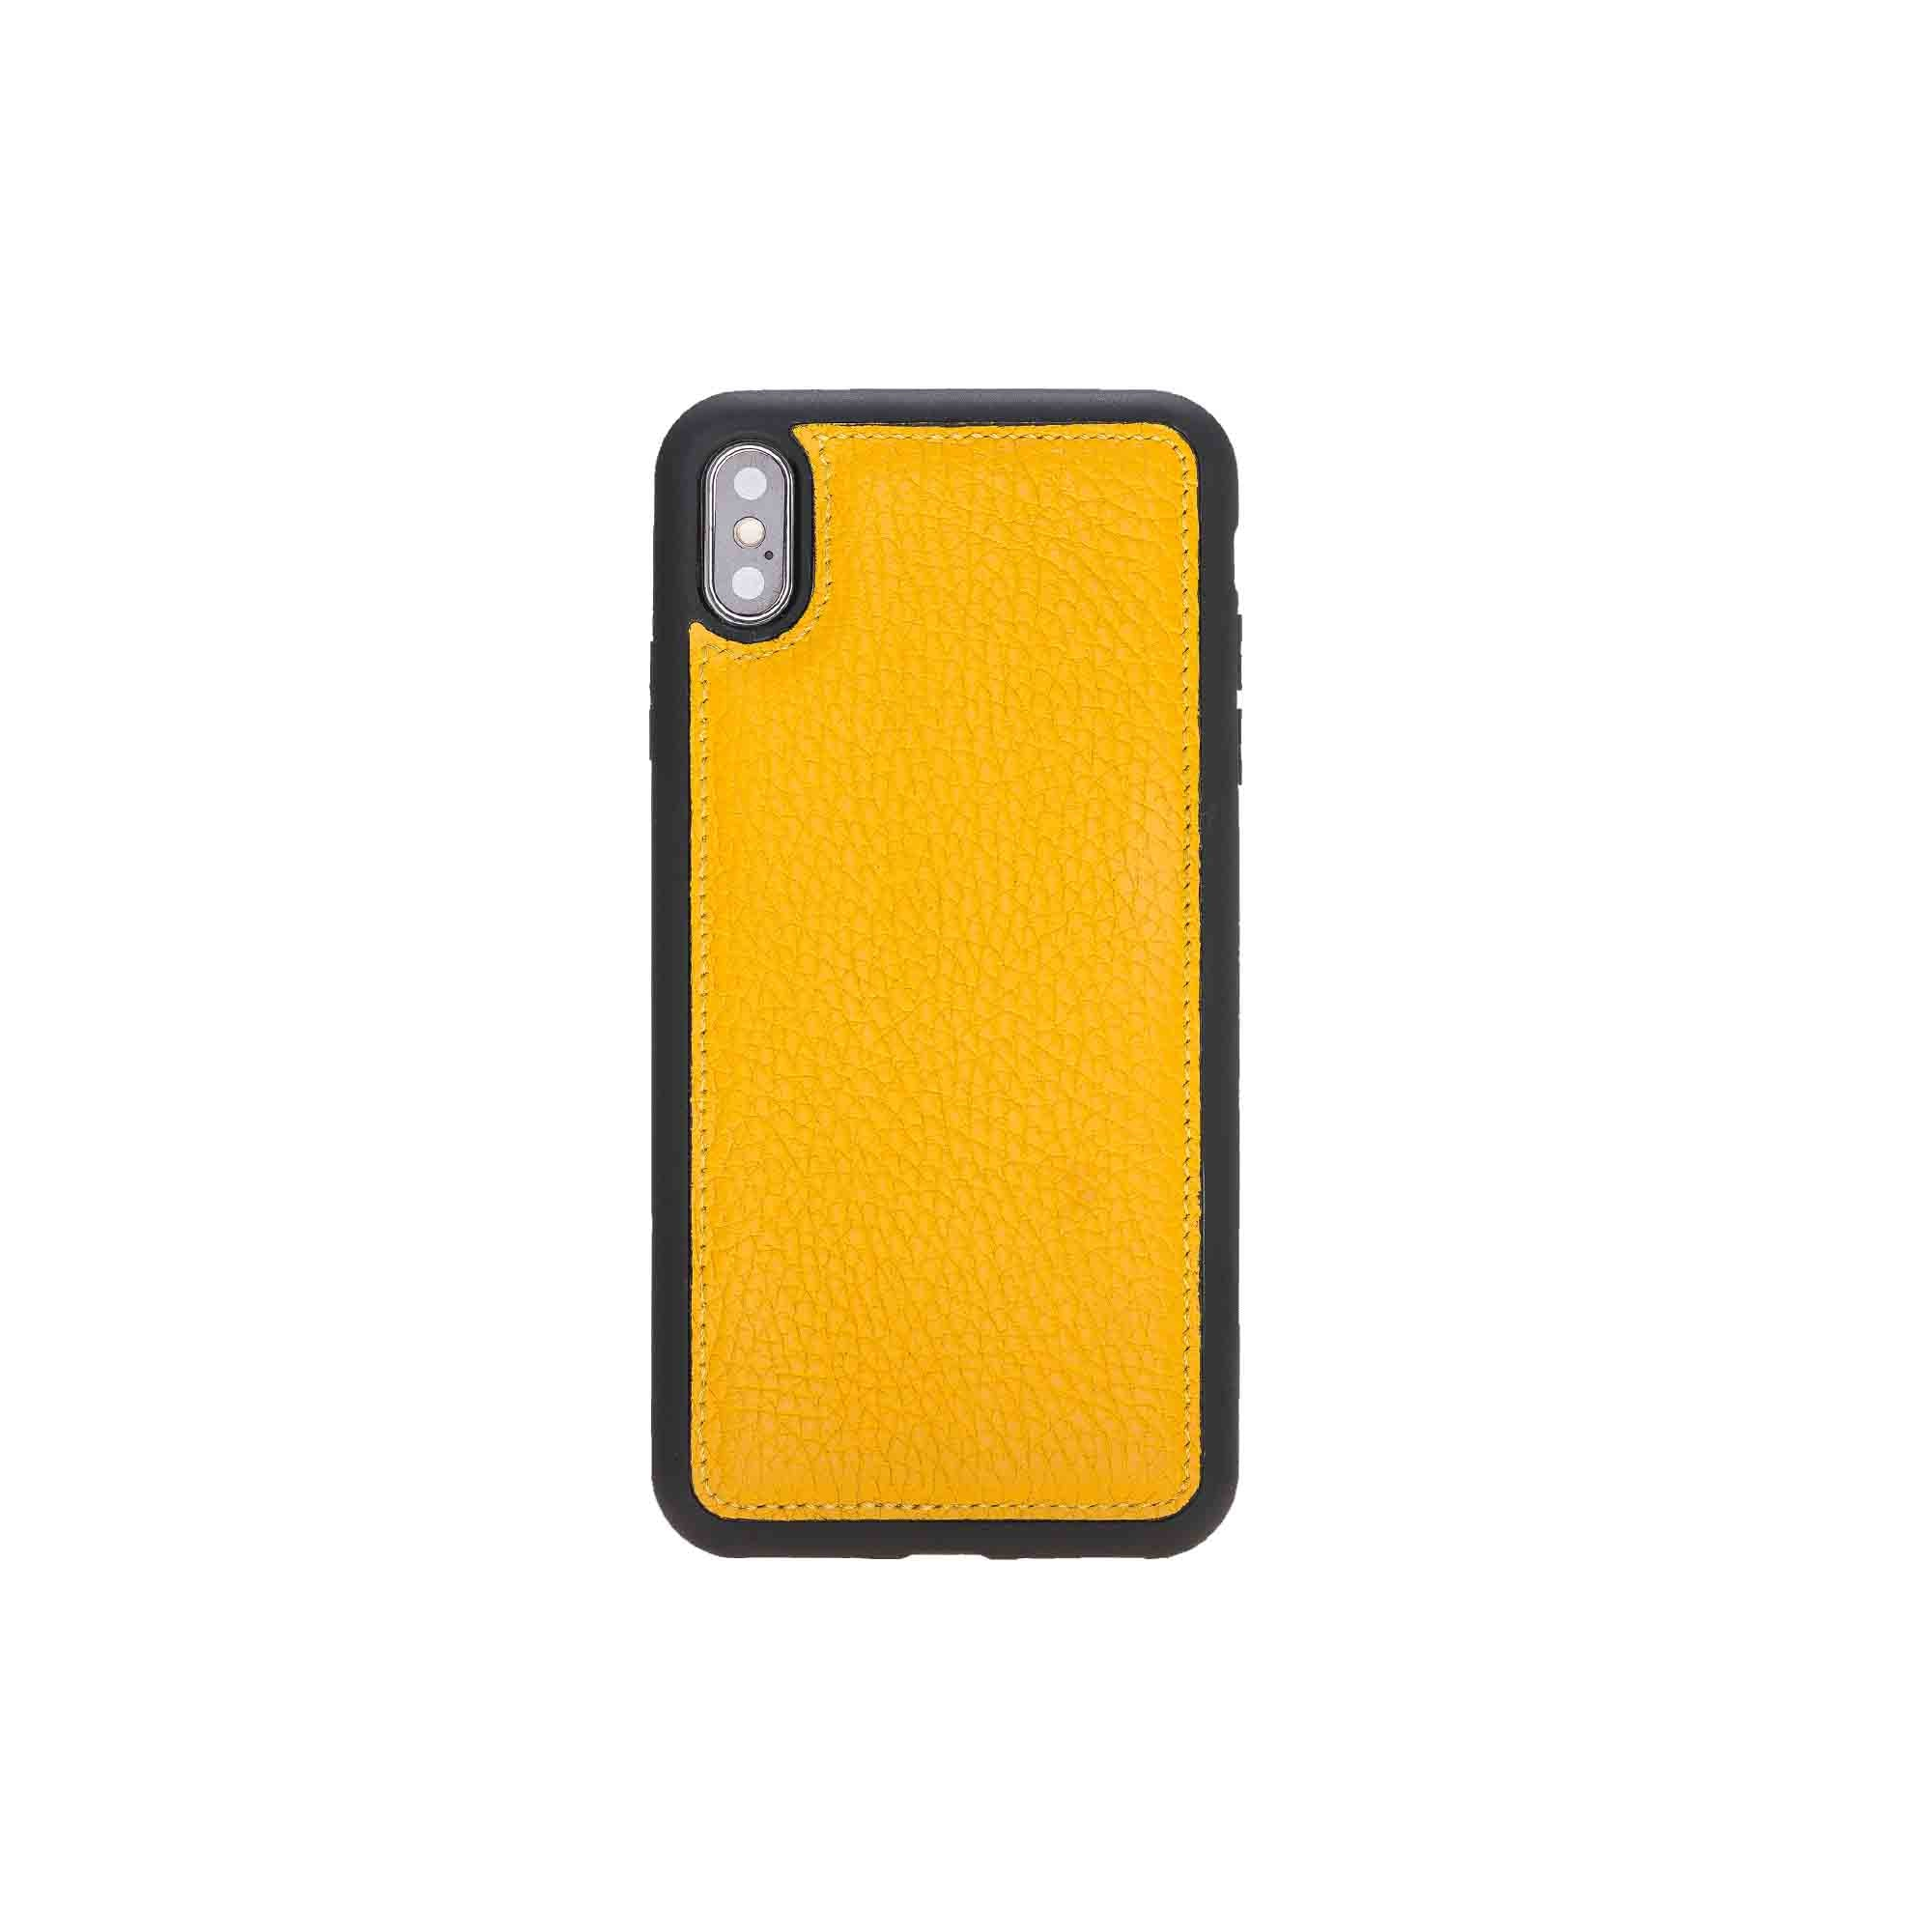 "Flex Cover Leather Case for iPhone XS Max (6.5"") - YELLOW - saracleather"